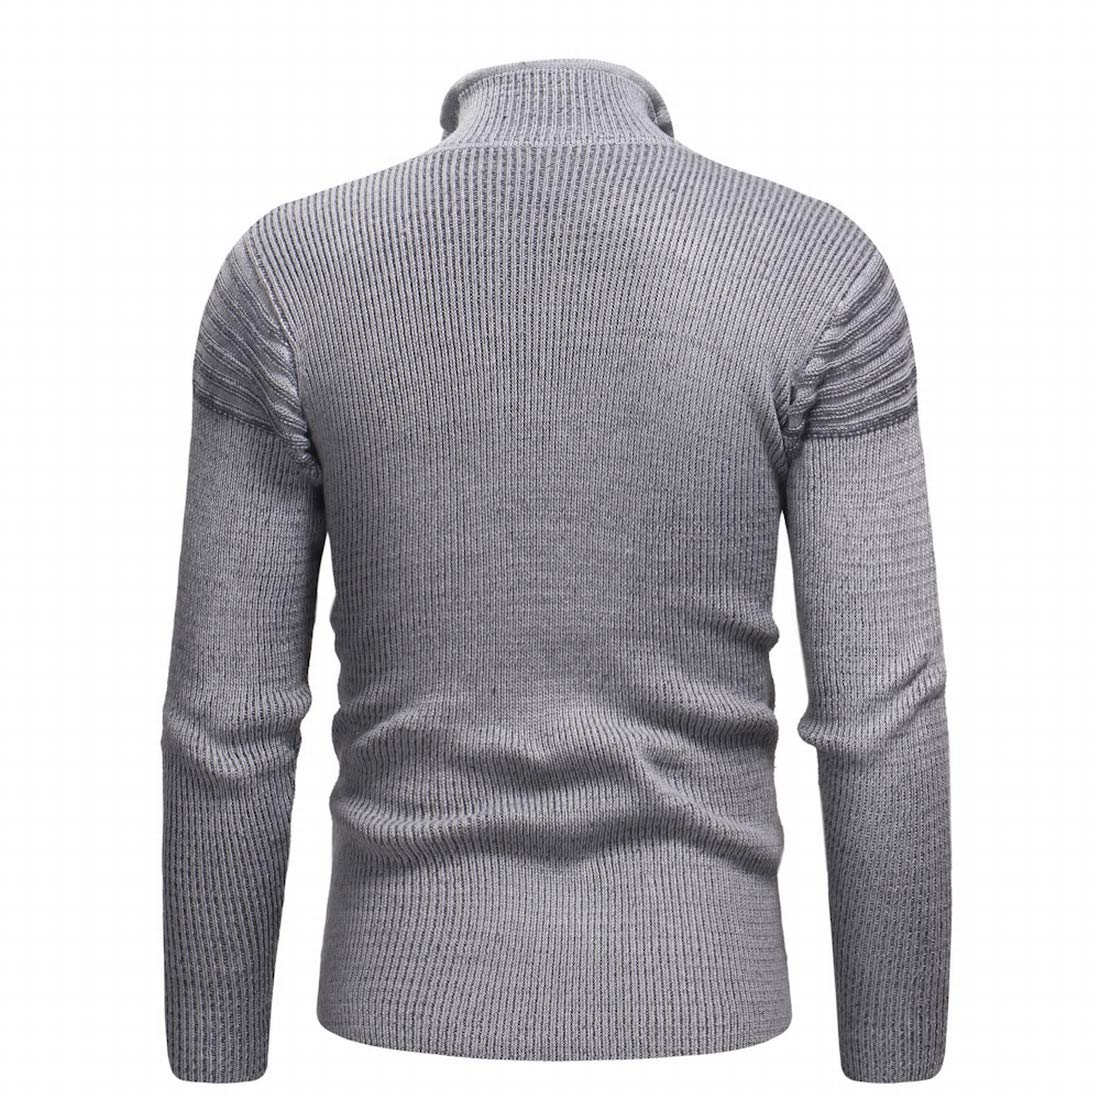 KLJR Men Stand Collar Zipper Ripped Slim Fit Pullover Knitted Sweater